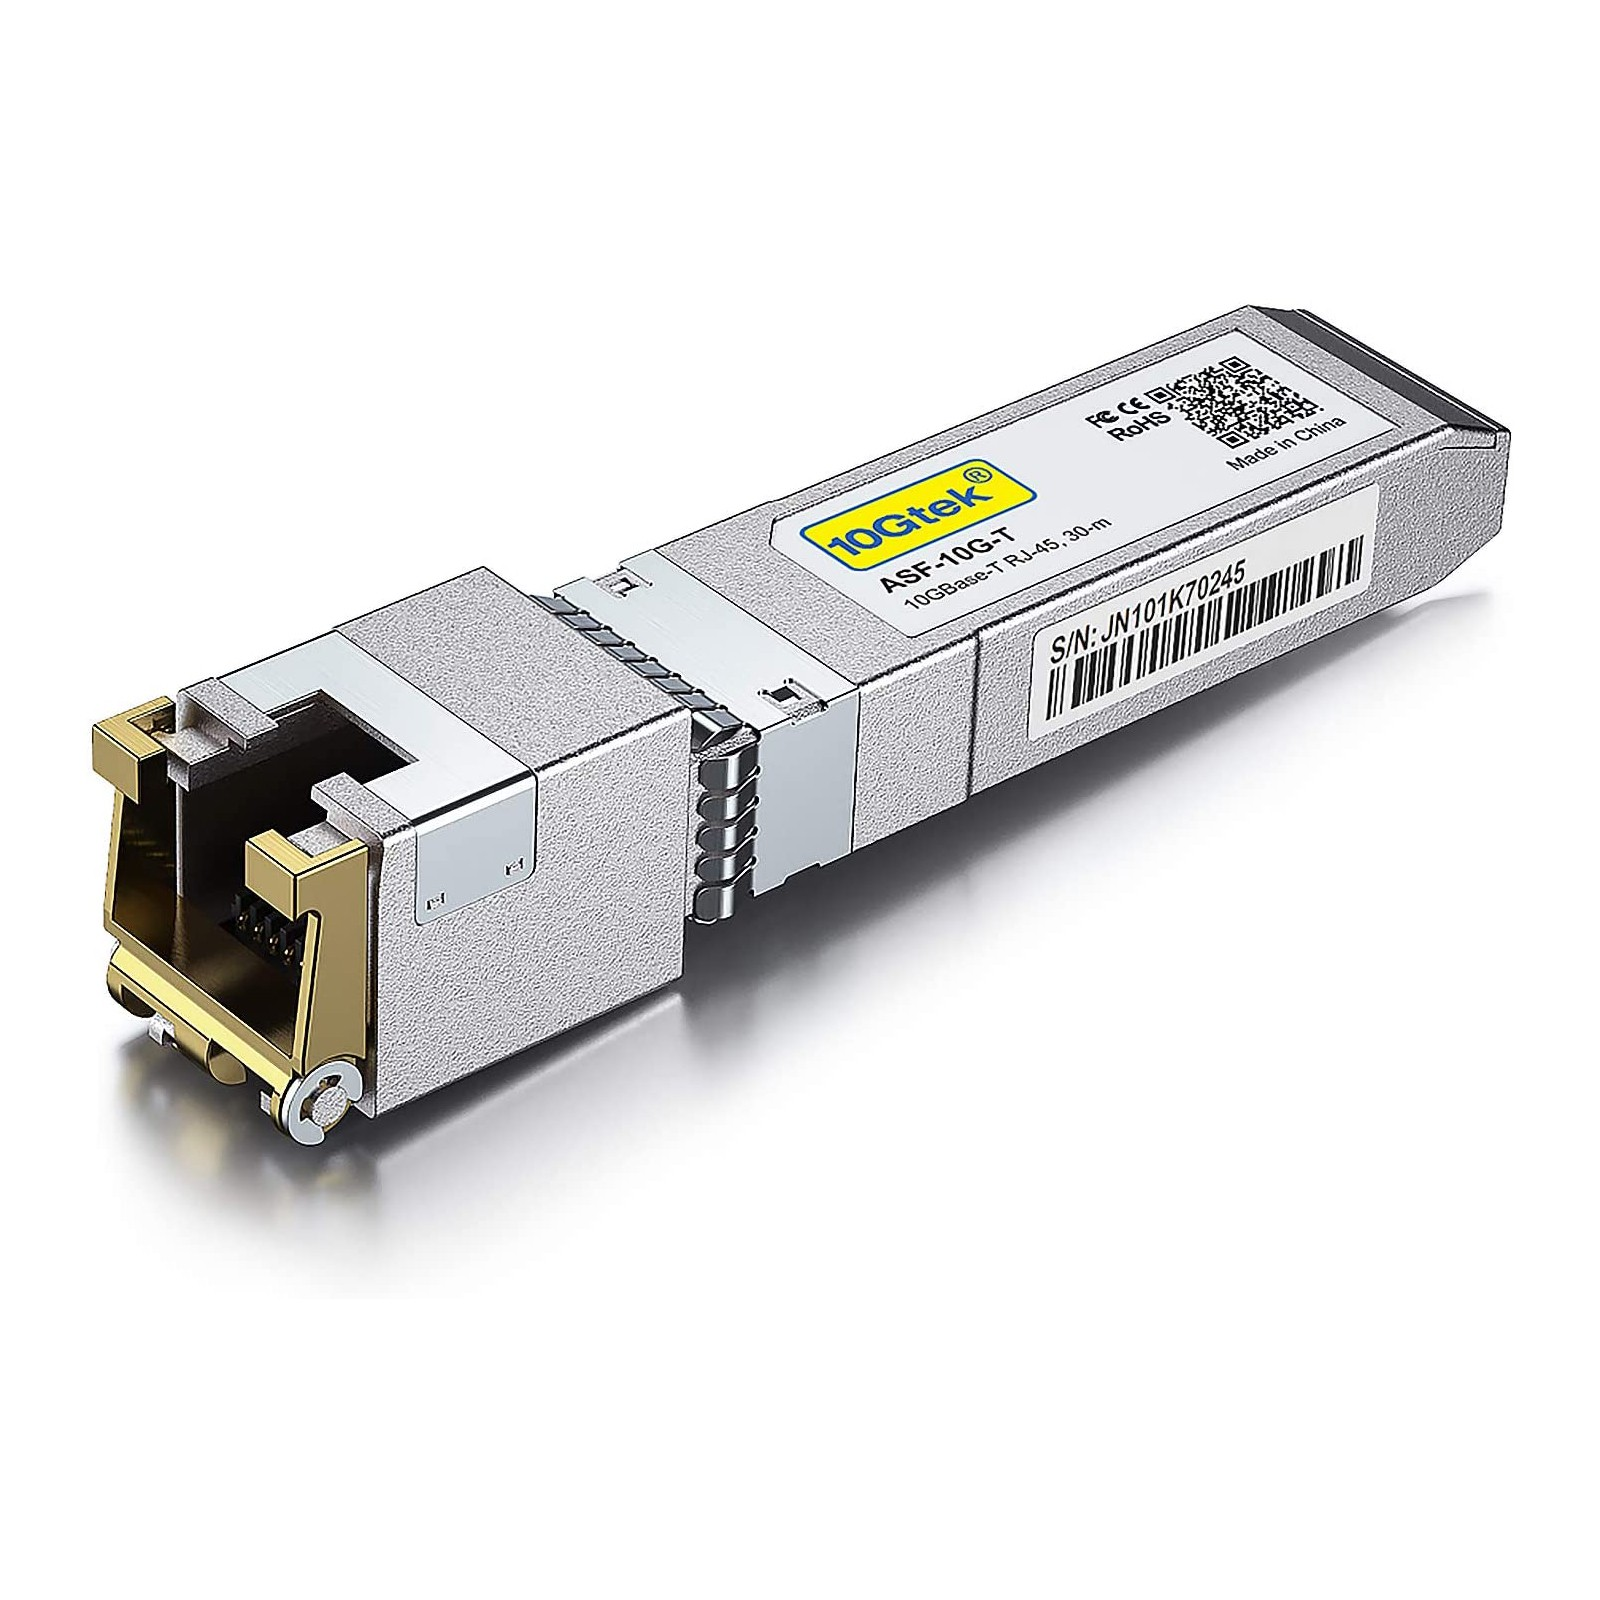 10GBase-T SFP+ Transceiver, 10G T, 10G Copper, RJ-45 SFP+ CAT.6a up to 30 meters Compatible for Huawei